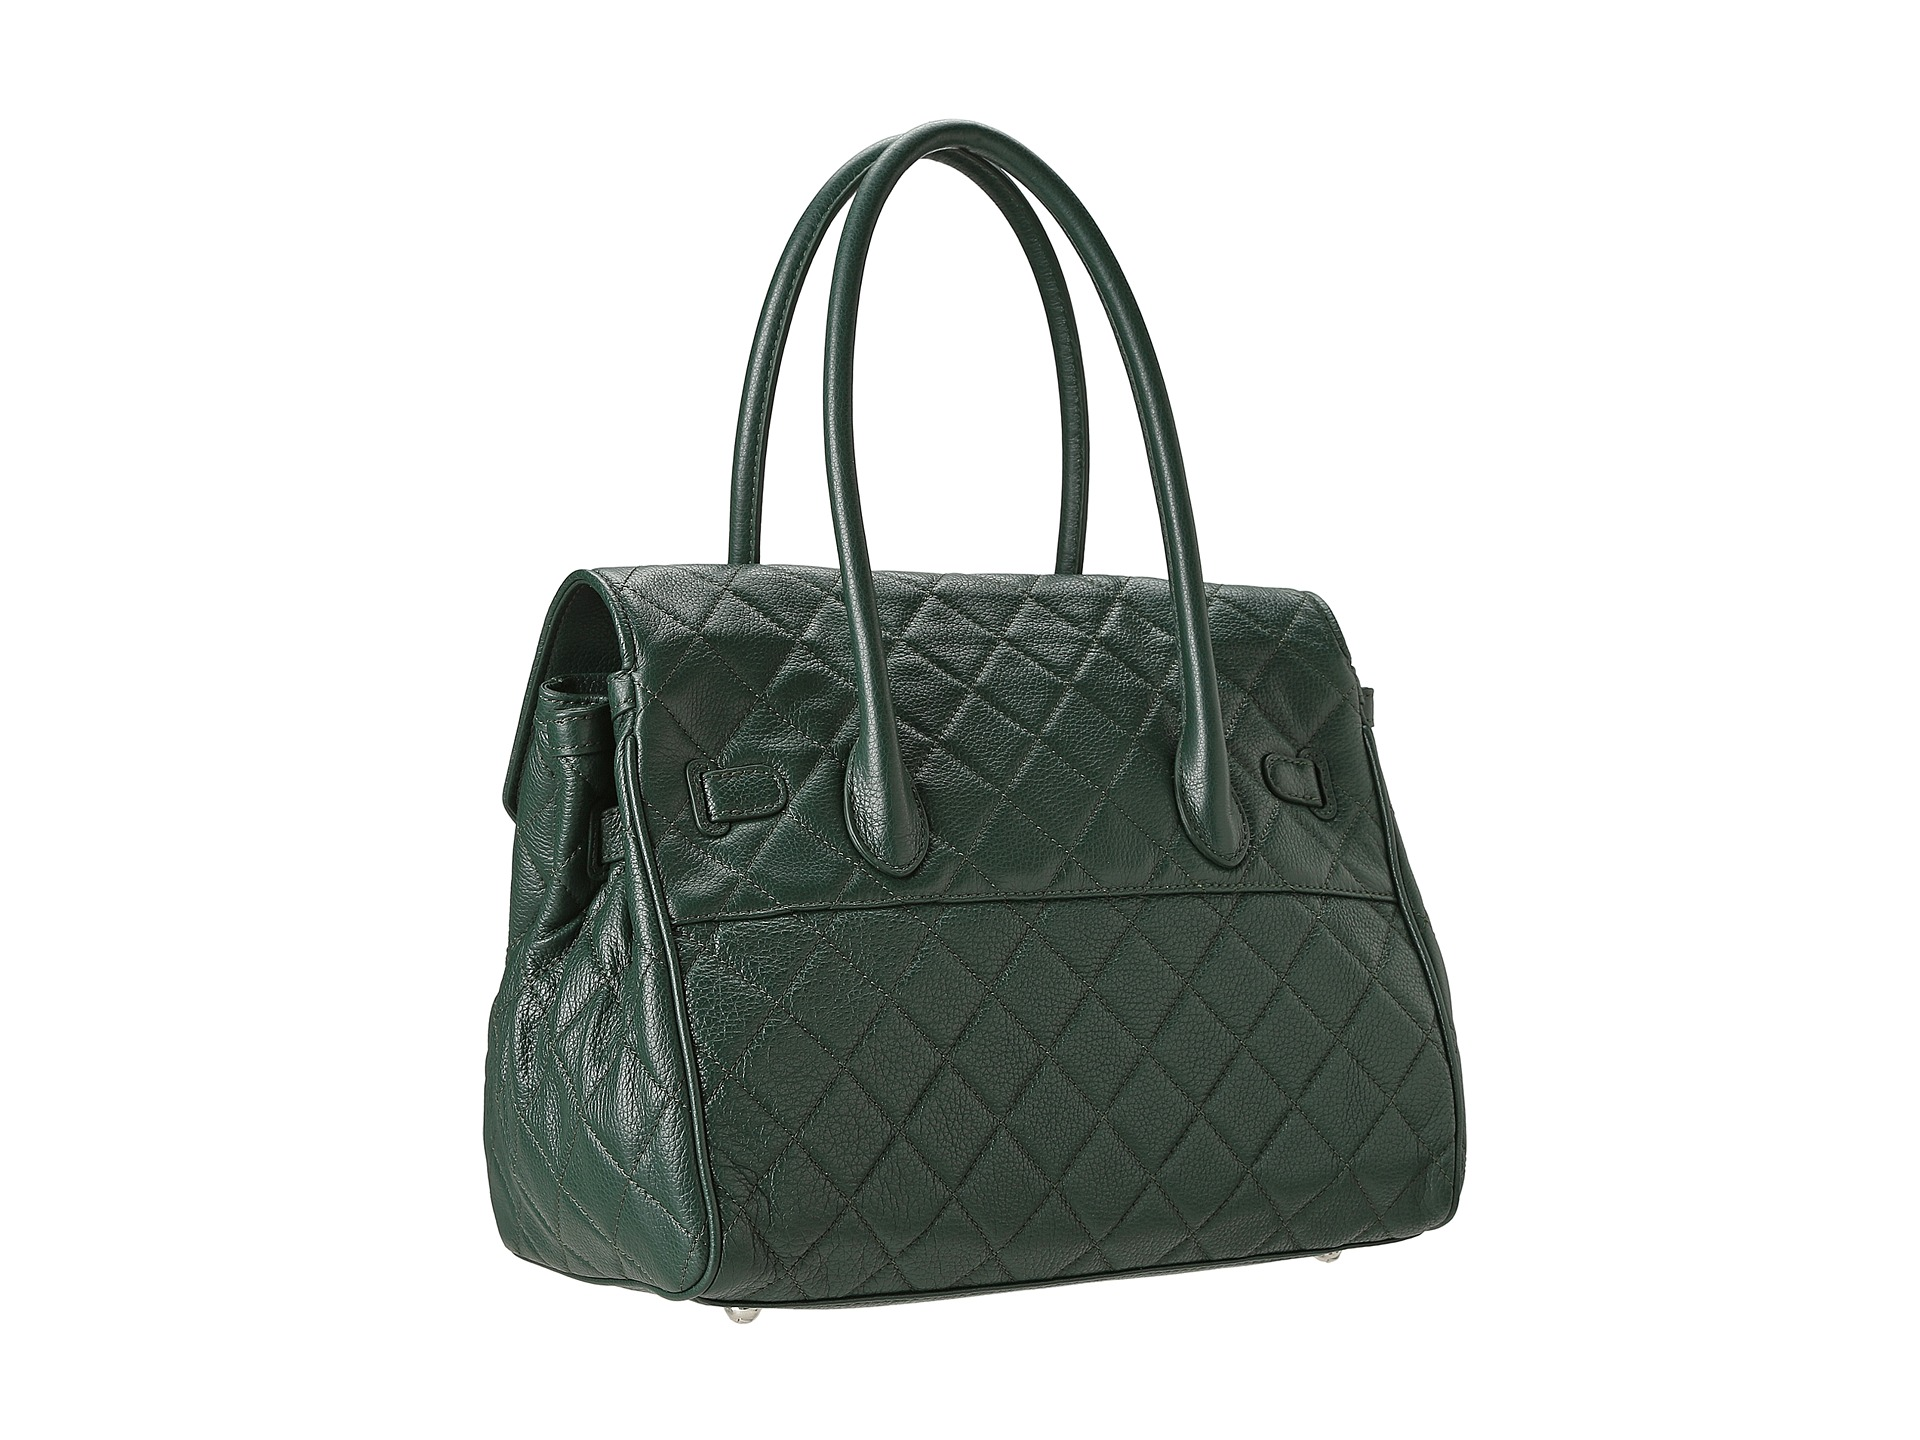 This is an authentic My Flat in London large bag. Stylish quilted pattern with velvet Queen Bee and crystal crown detail. There is a velvet bow and a drop crystal on the handle. Both appear to be removable if desired. $ Brand: My Flat in London. Free shipping.